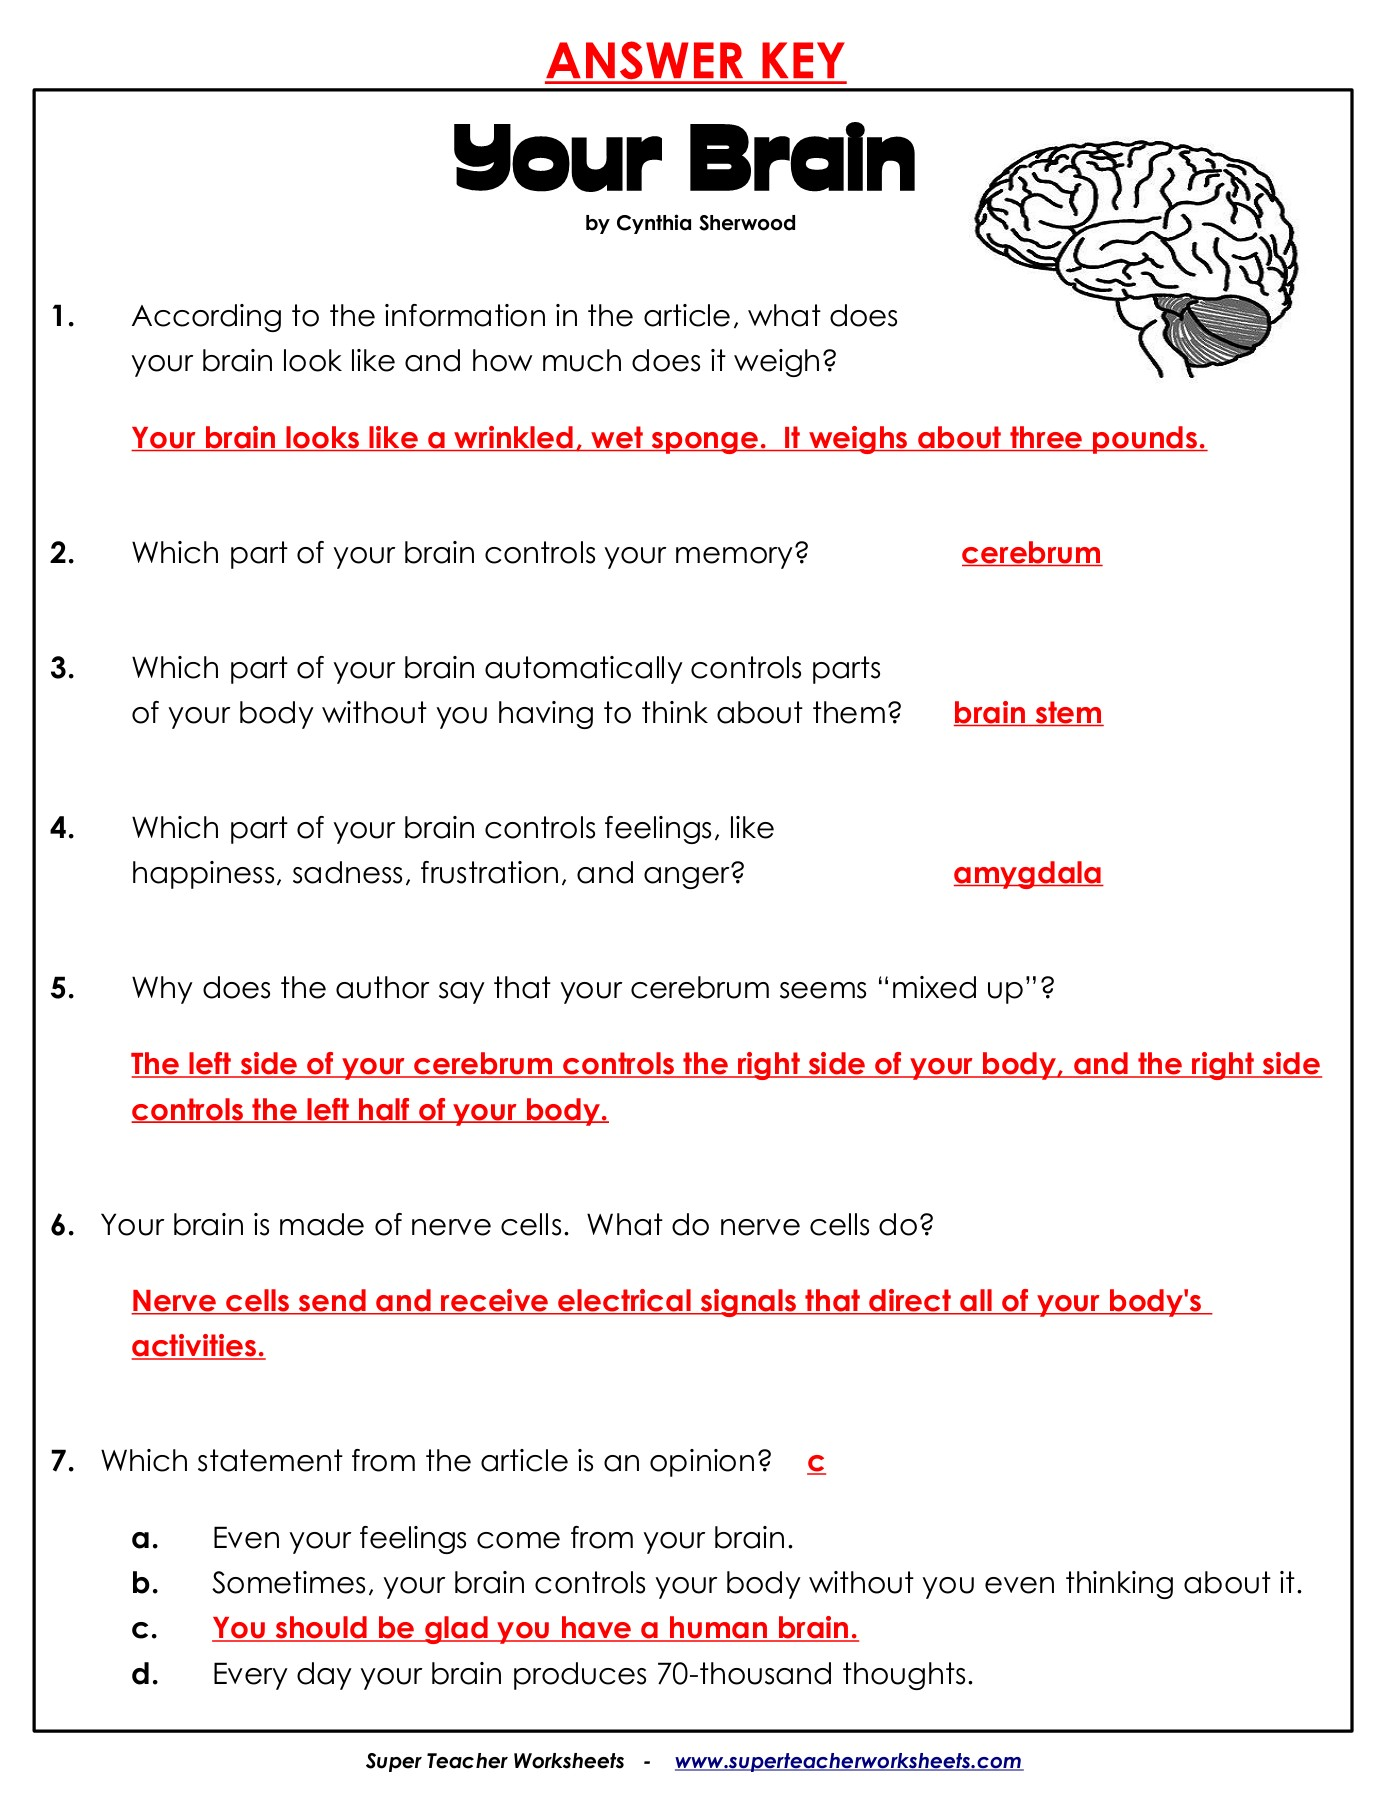 Printables Of Super Teacher Worksheets Com